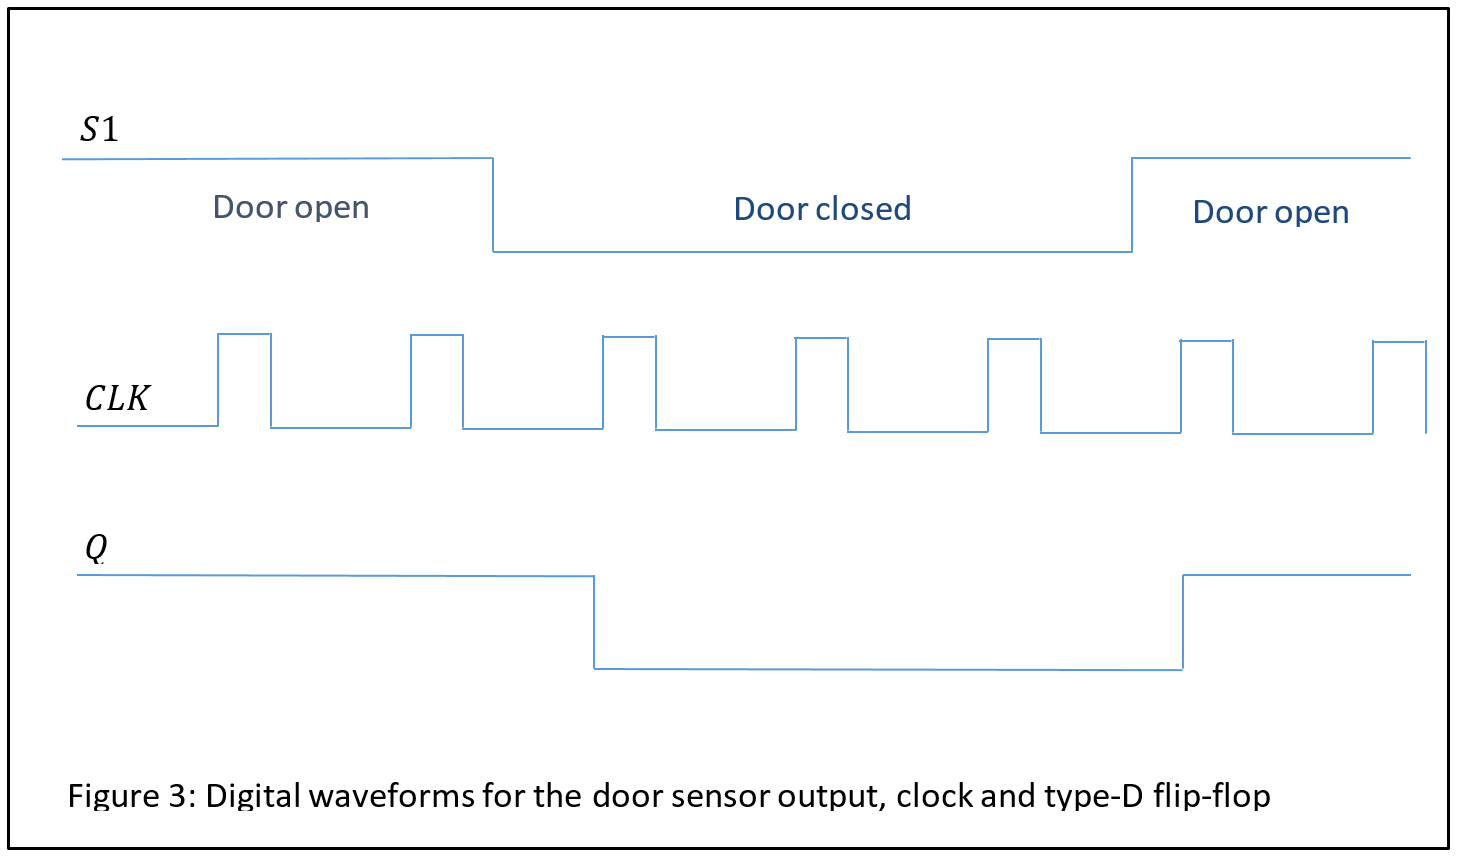 Digital Logic Examples Electrical Engineering Circuit Symbols View Diagram Figure 3 Waveforms For The Door Sensor Output Clock And Type D Flip Flop